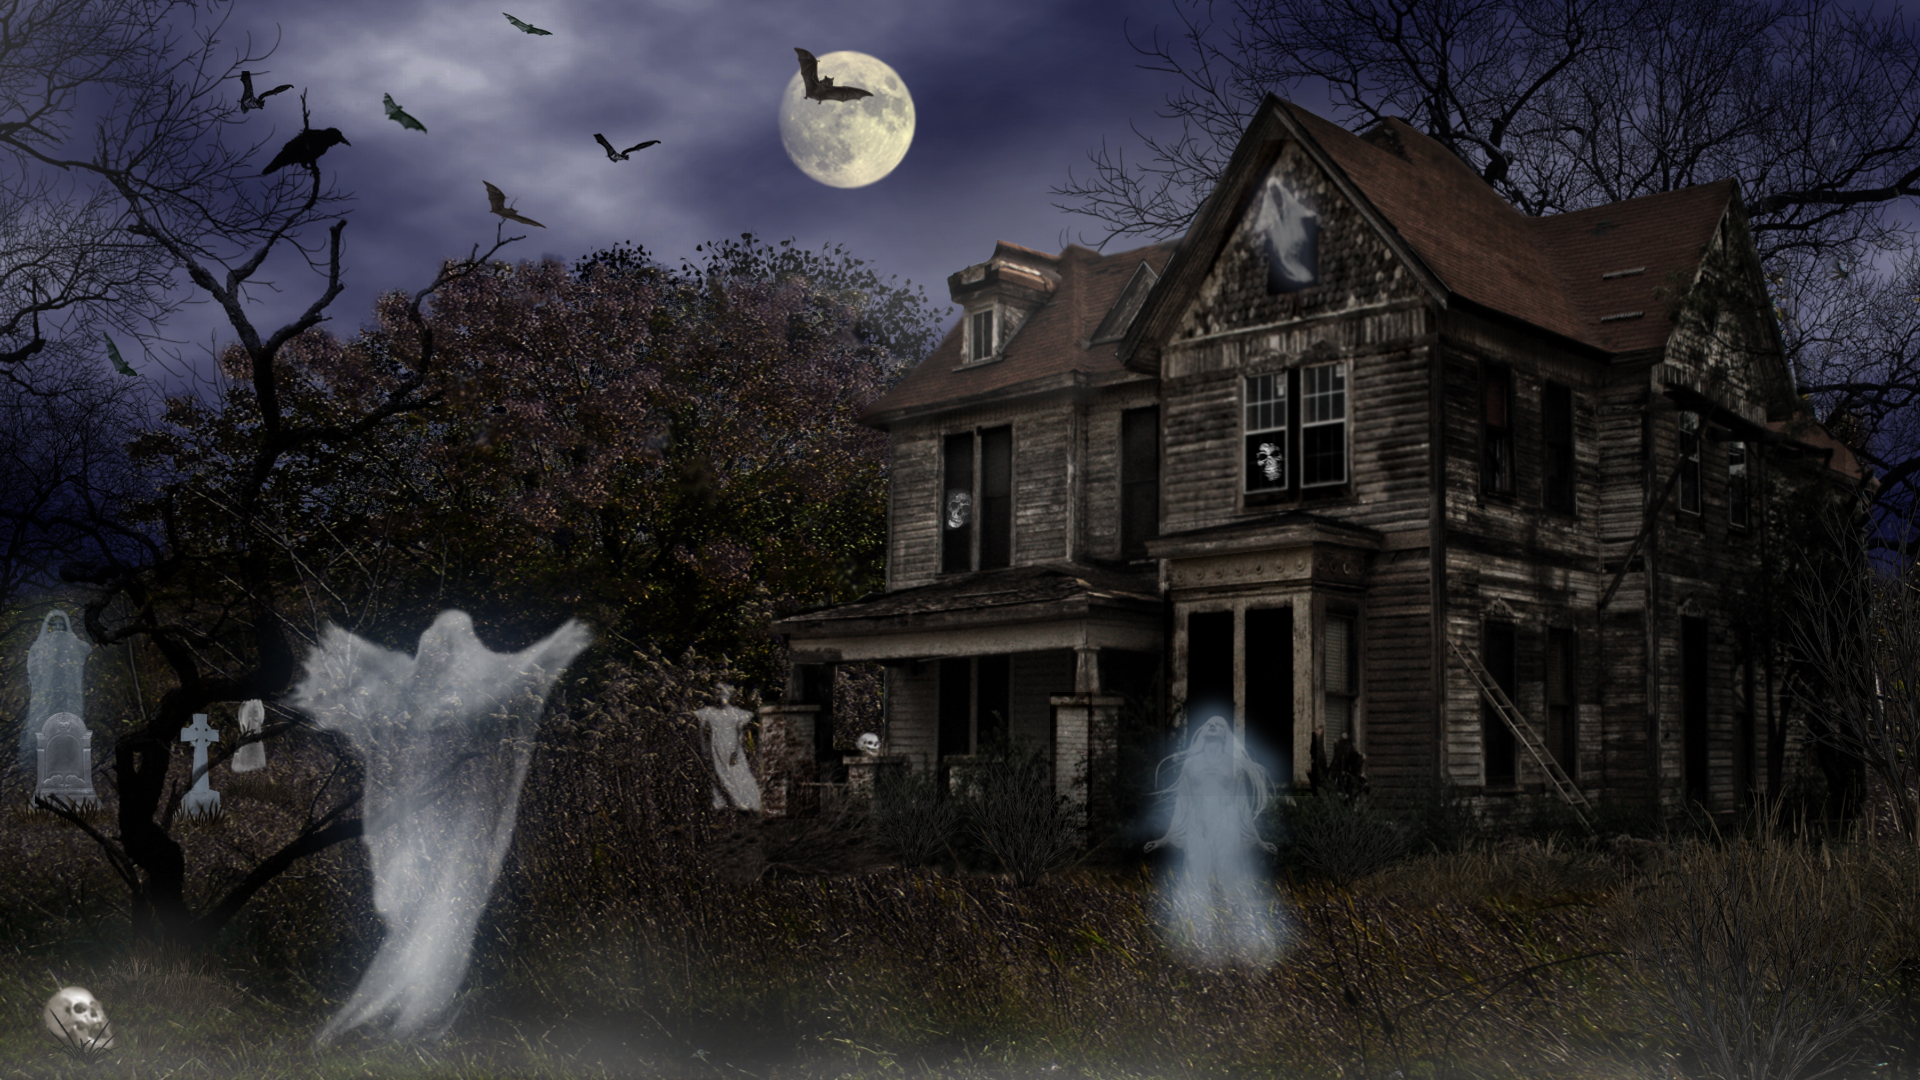 haunted house wallpaper with sound - photo #6